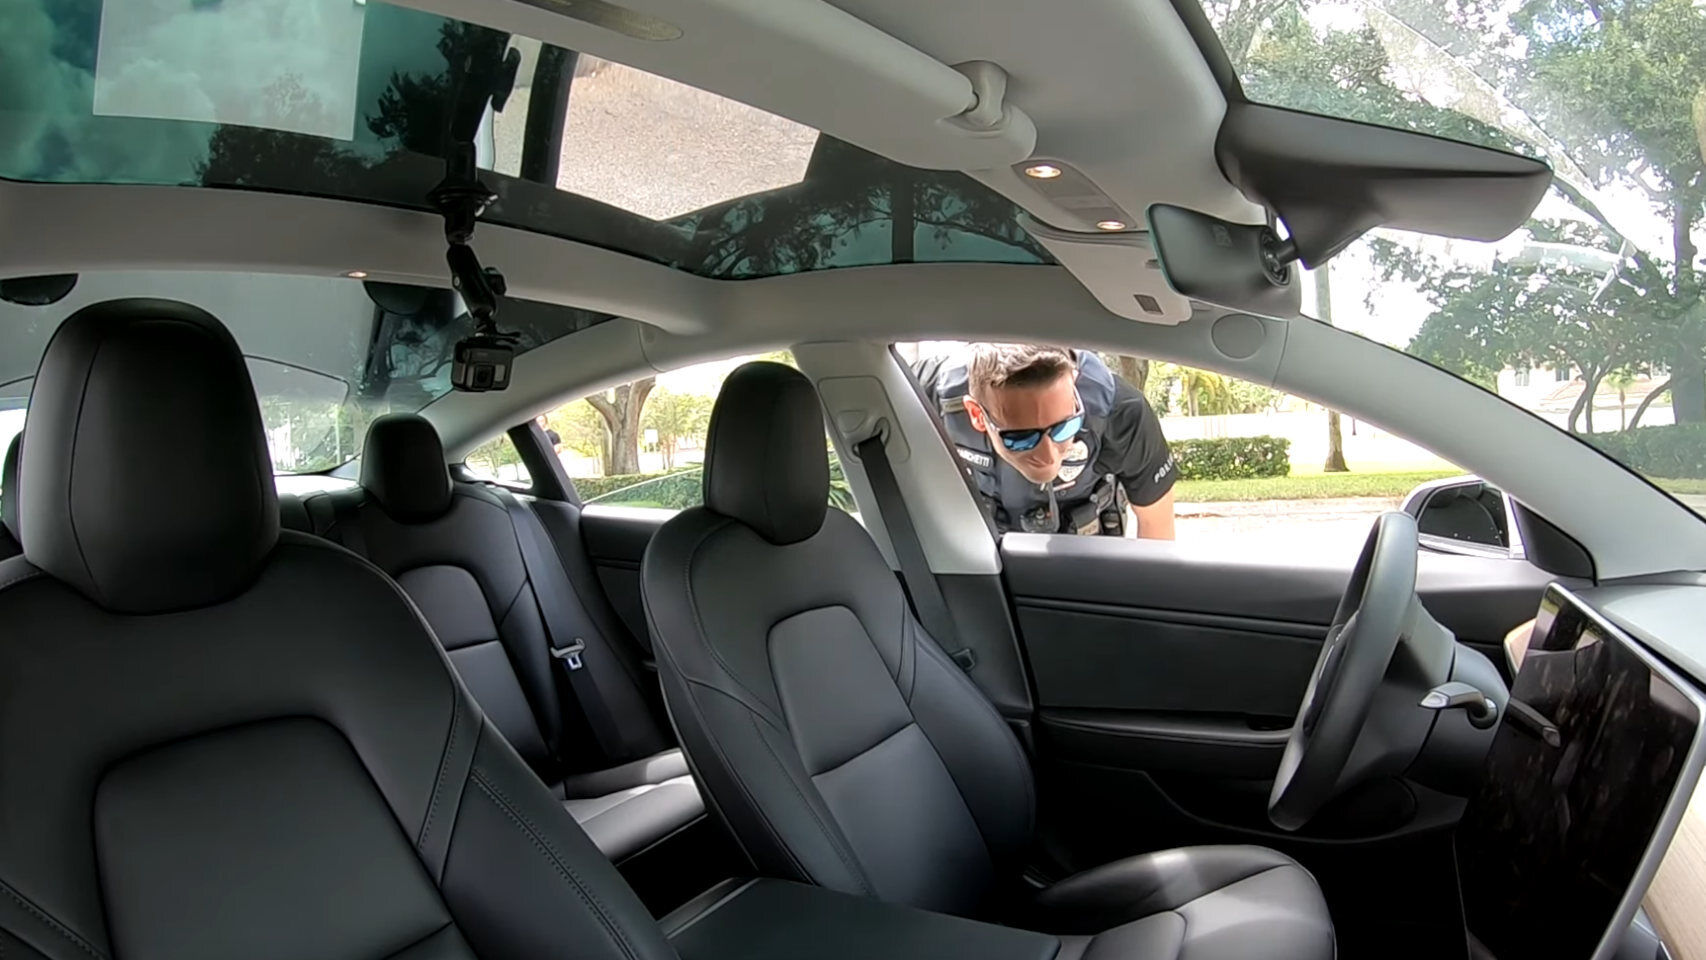 A driverless Tesla is stopped by the police, is this video real?